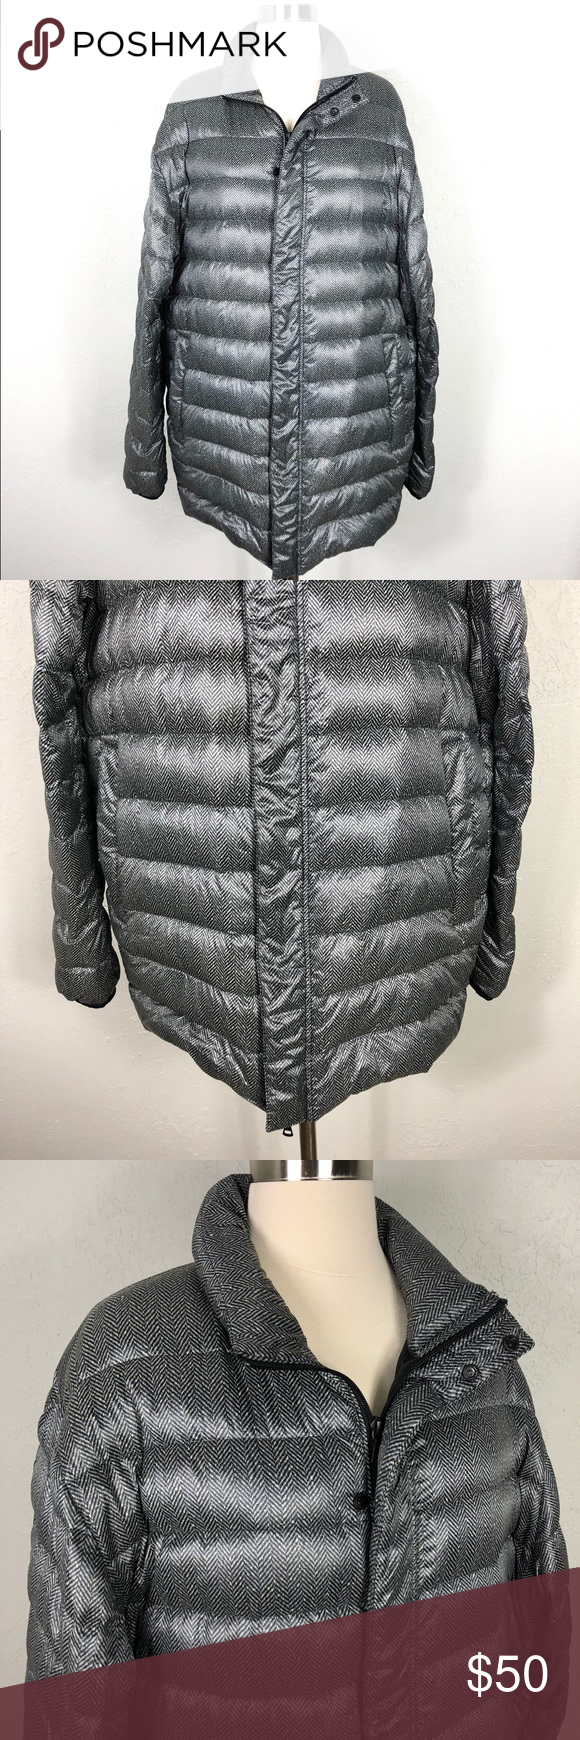 Uniqlo Ultra Light Down Puffer Jacket XL Clothes